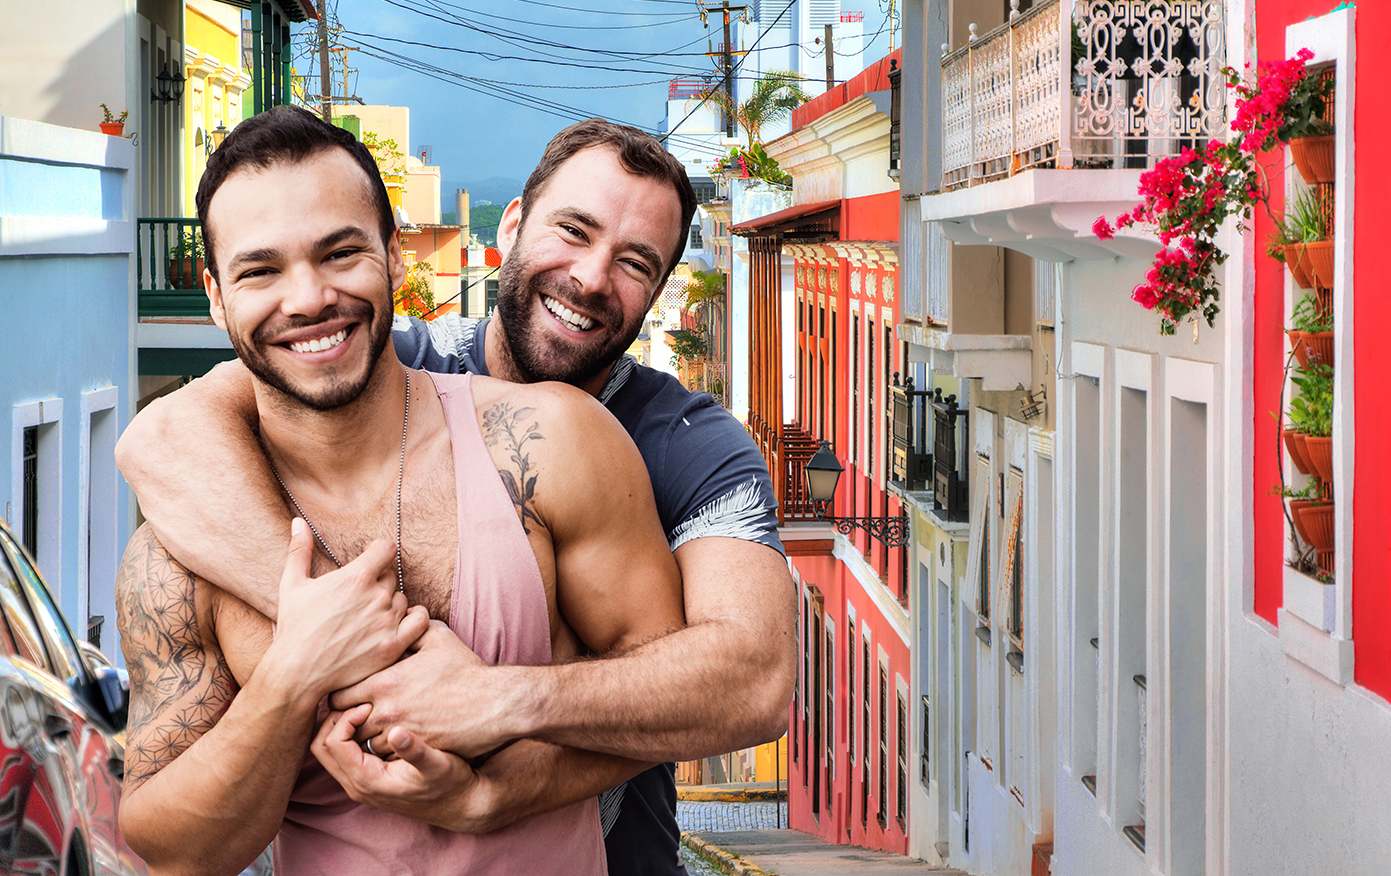 Bears Gays Videos bearcruise | the most trusted name in gay travel